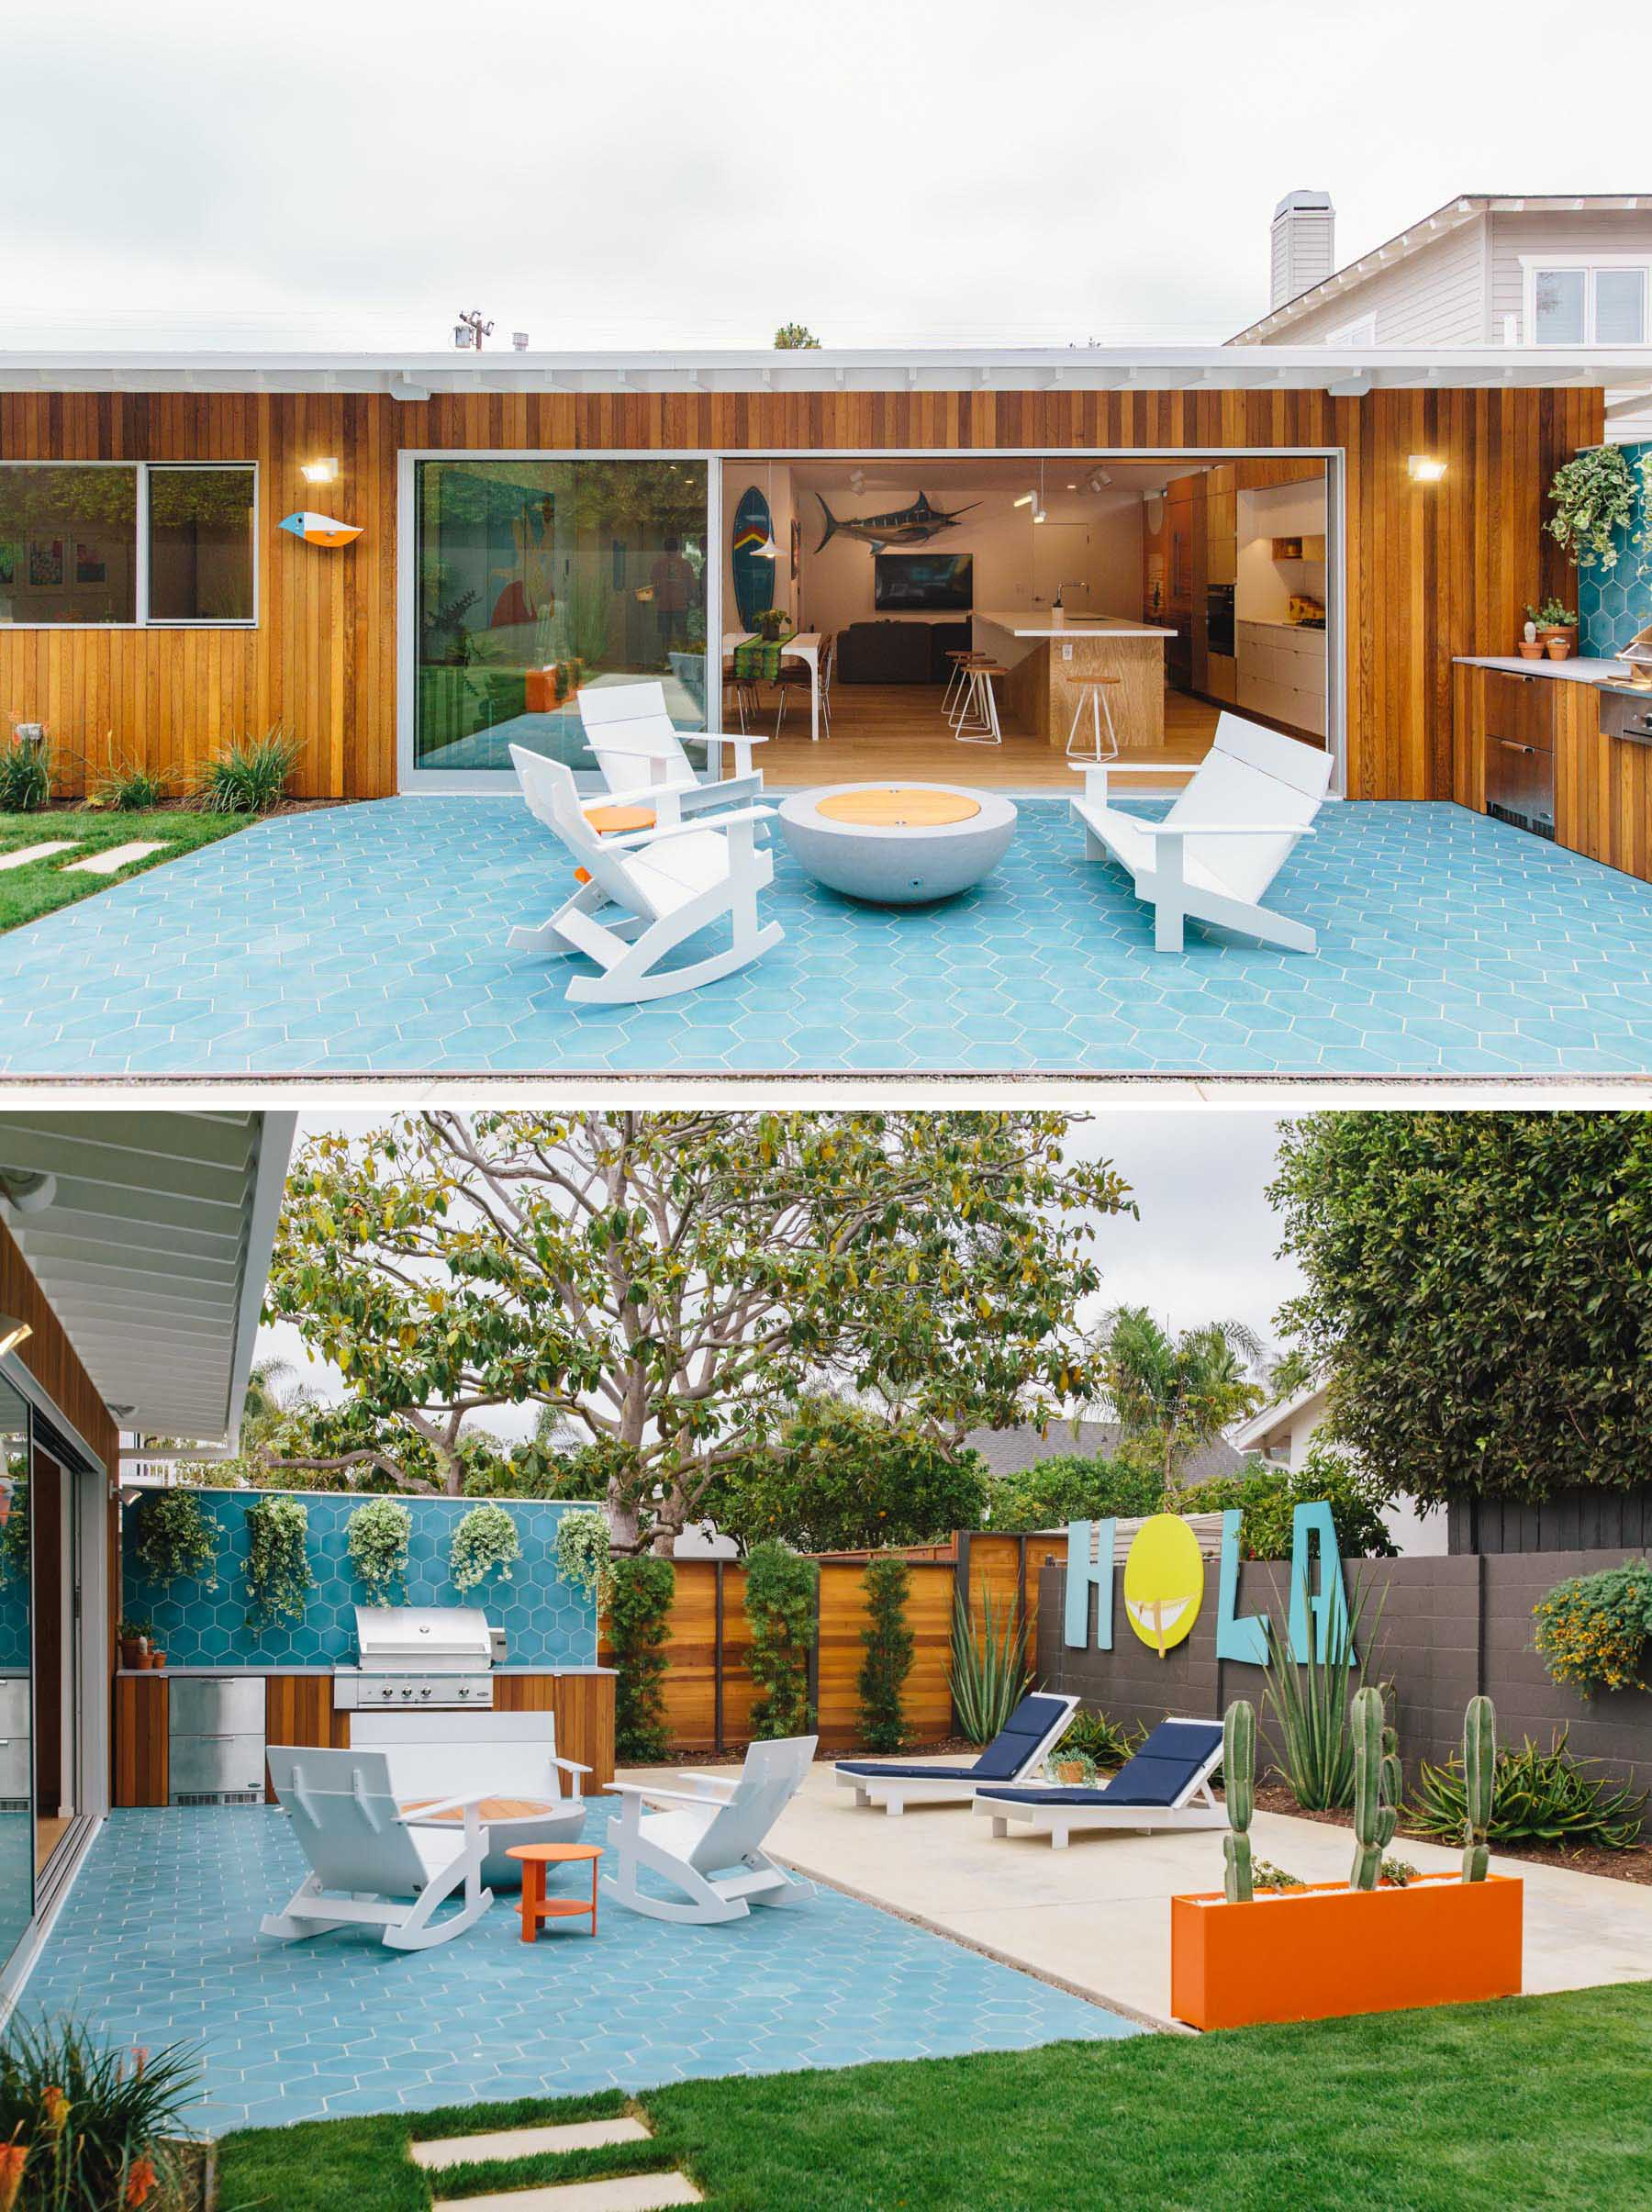 The new outdoor space includes an outdoor kitchen with built-in BBQ, a blue hexagonal tile patio, a fire bowl with lounge chairs, a colorful planter and artwork, and a grassy yard. Due to California state drought conditions, landscaping mandated low mow/drought tolerant grass, succulents, and cacti.